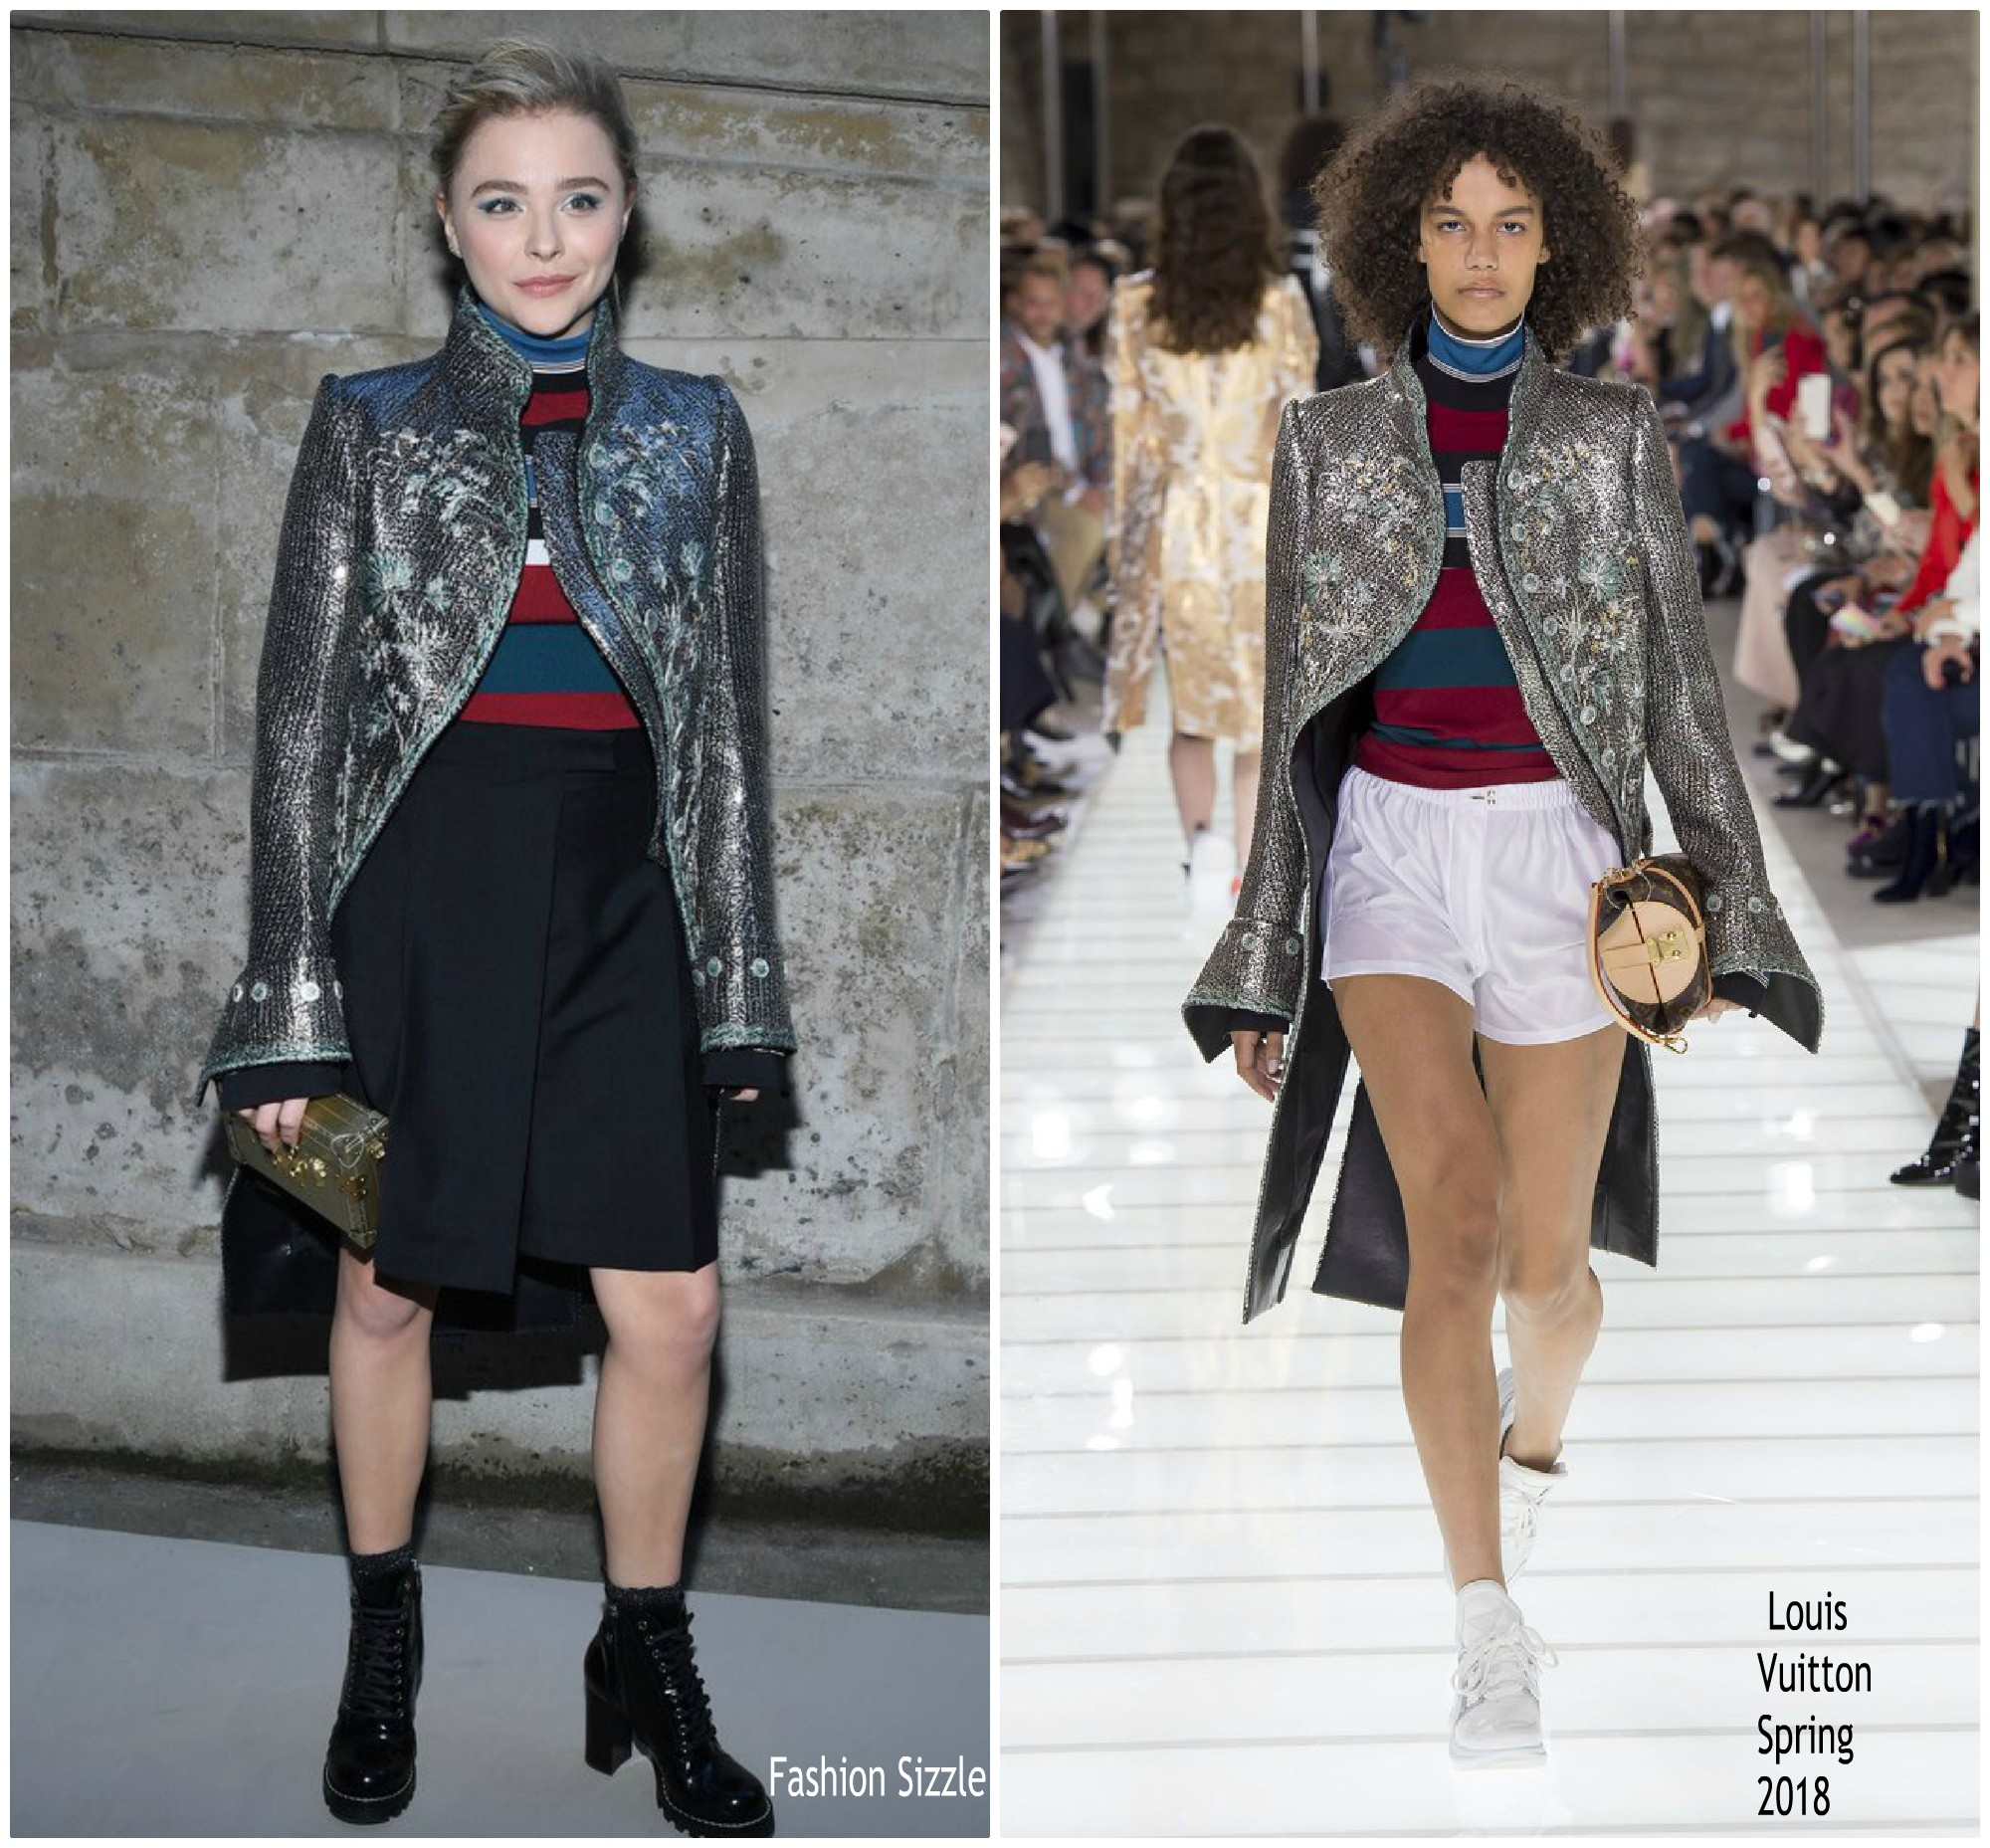 CHLOE-MORETZ-IN-LOUIS-VUITTON-LOUIS-VUITTON-FALL-2018-SHOW